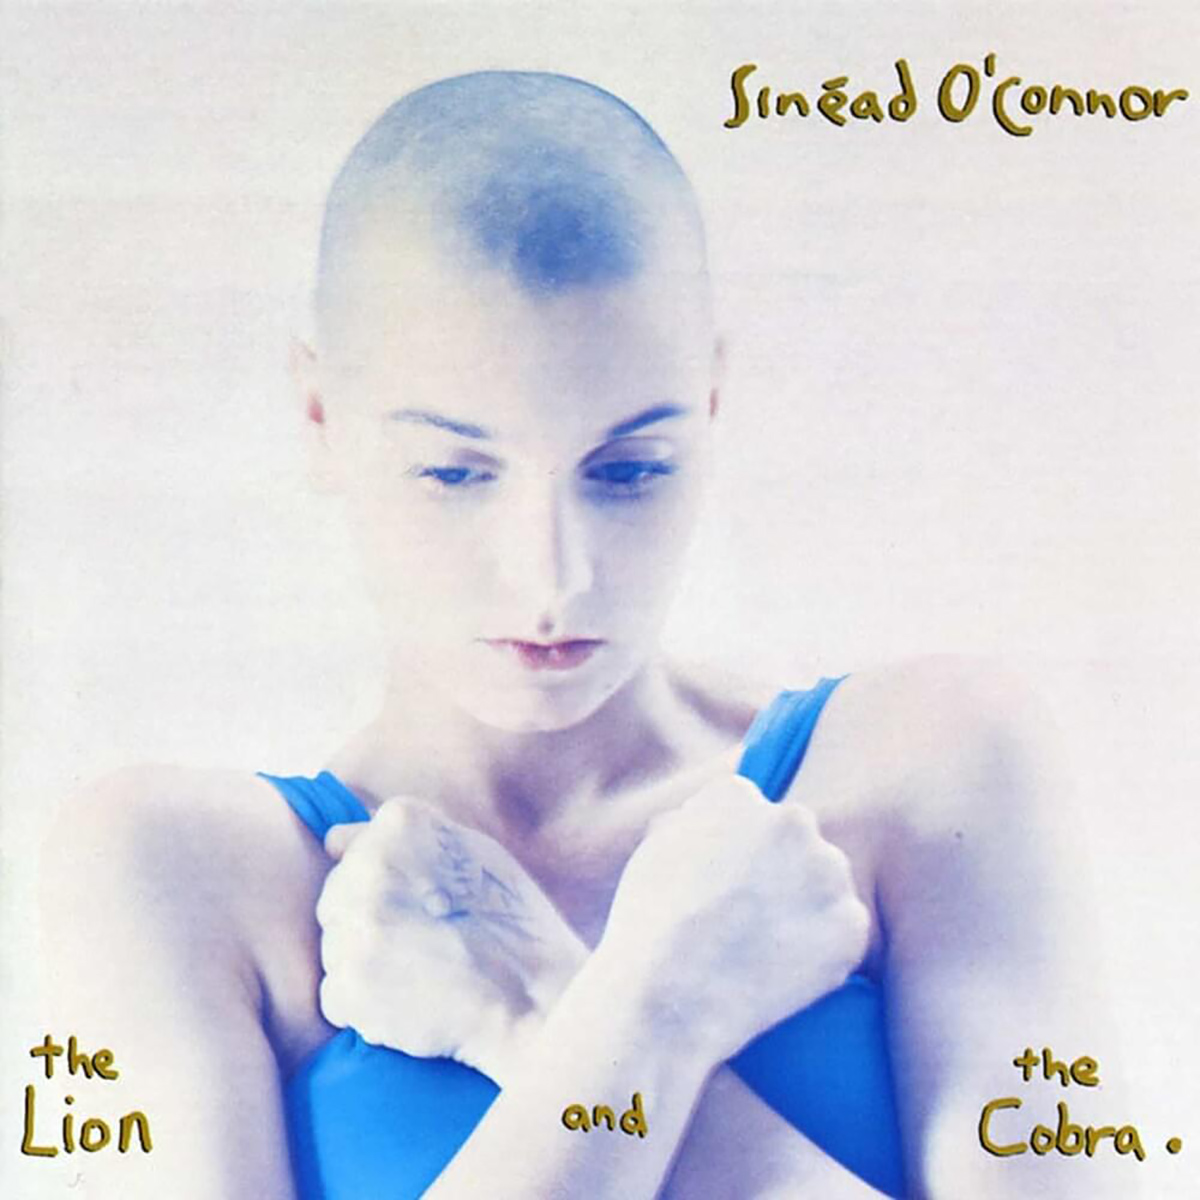 Sinéad O'Connor, The Lion and the Cobra